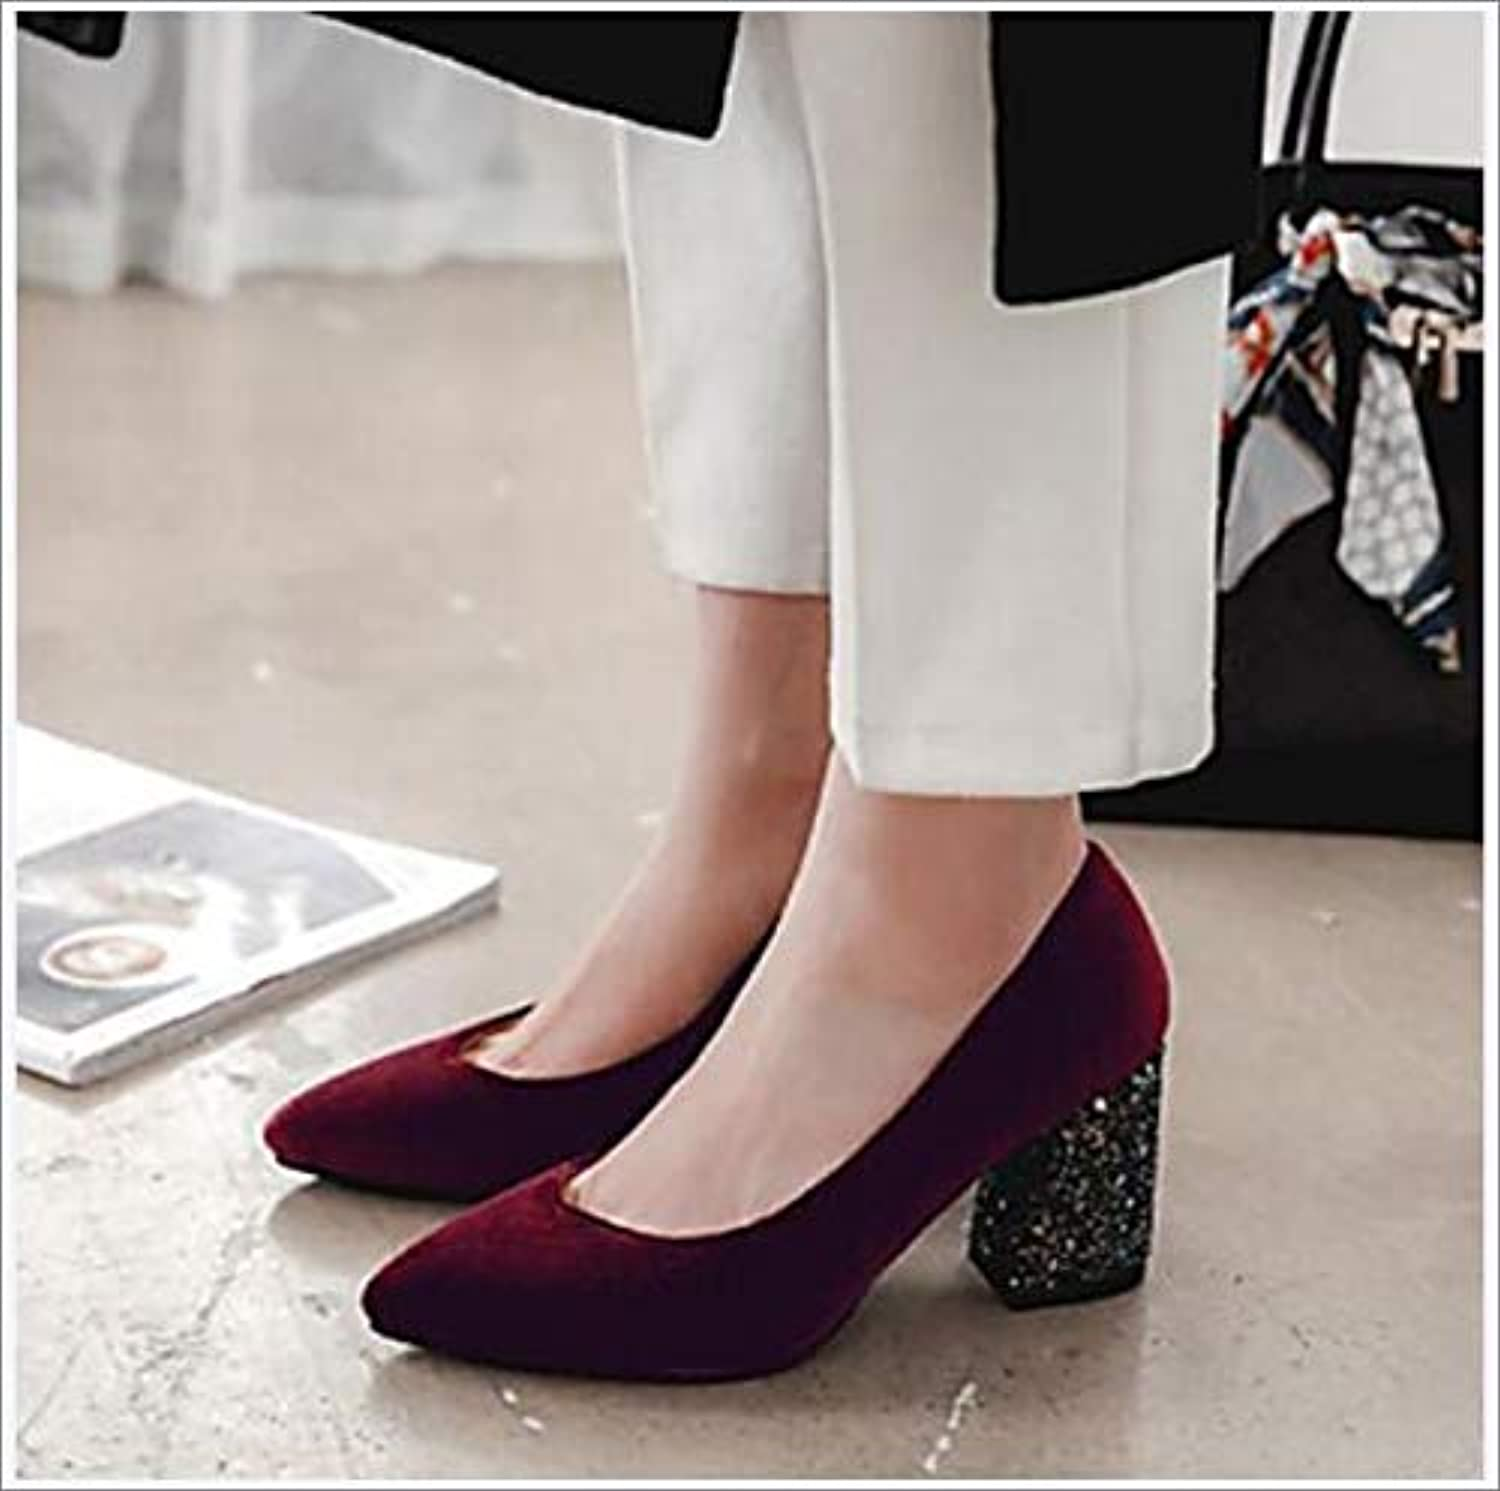 Women's shoes Suede Spring & Summer Basic Pump Heels Chunky Heel Pointed Toe Sequin Party & Evening,B,US11.5 EU43 UK9.5 CN45